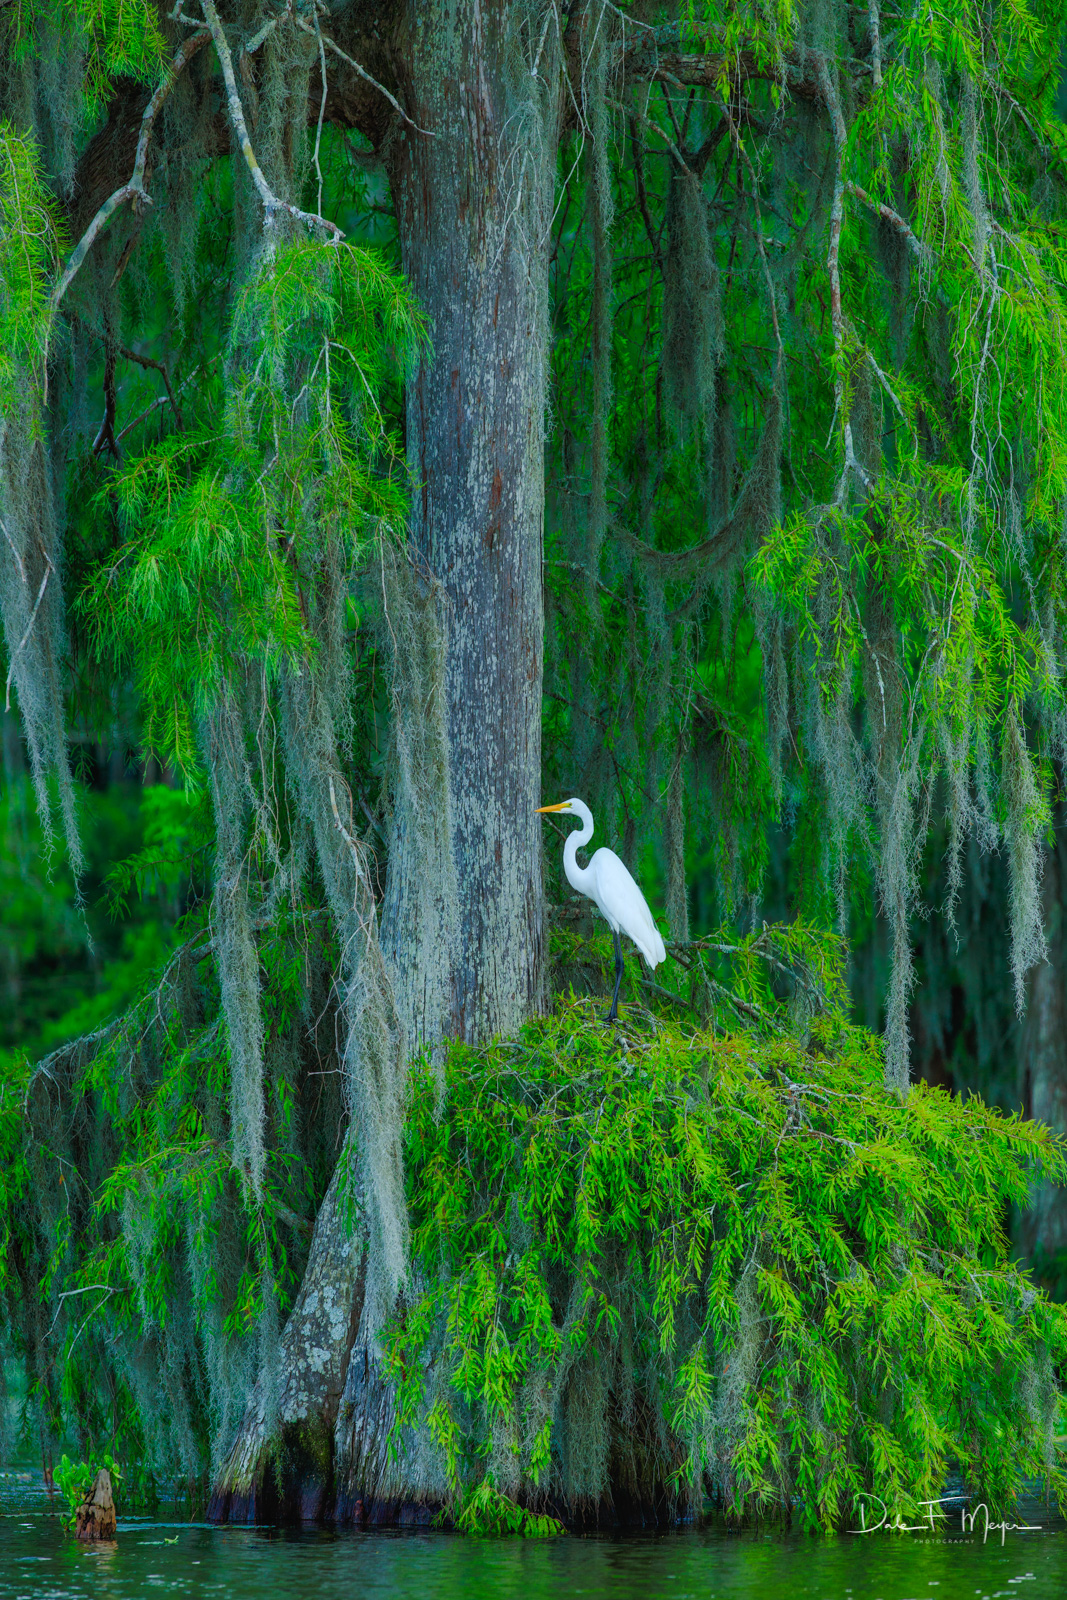 Atchafalaya River Basin, Atchafalaya swamp, Cypress tree, Southern Places Gallery, Spanish Moss, Spring 2016, White Egret, photo